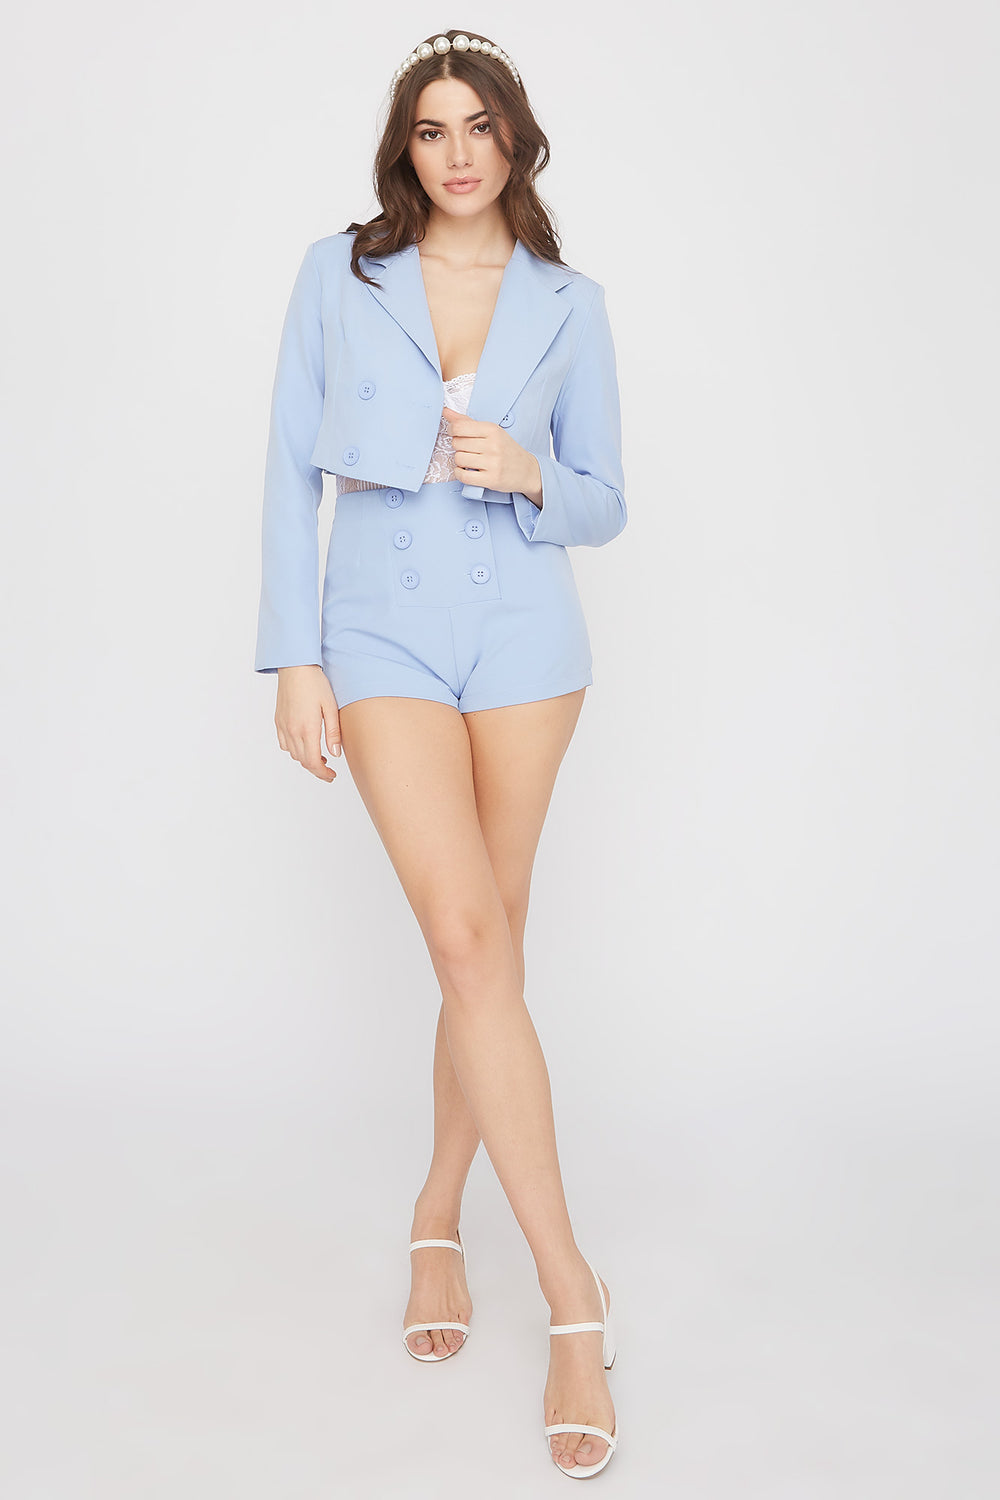 High-Rise Double Button Short Light Blue